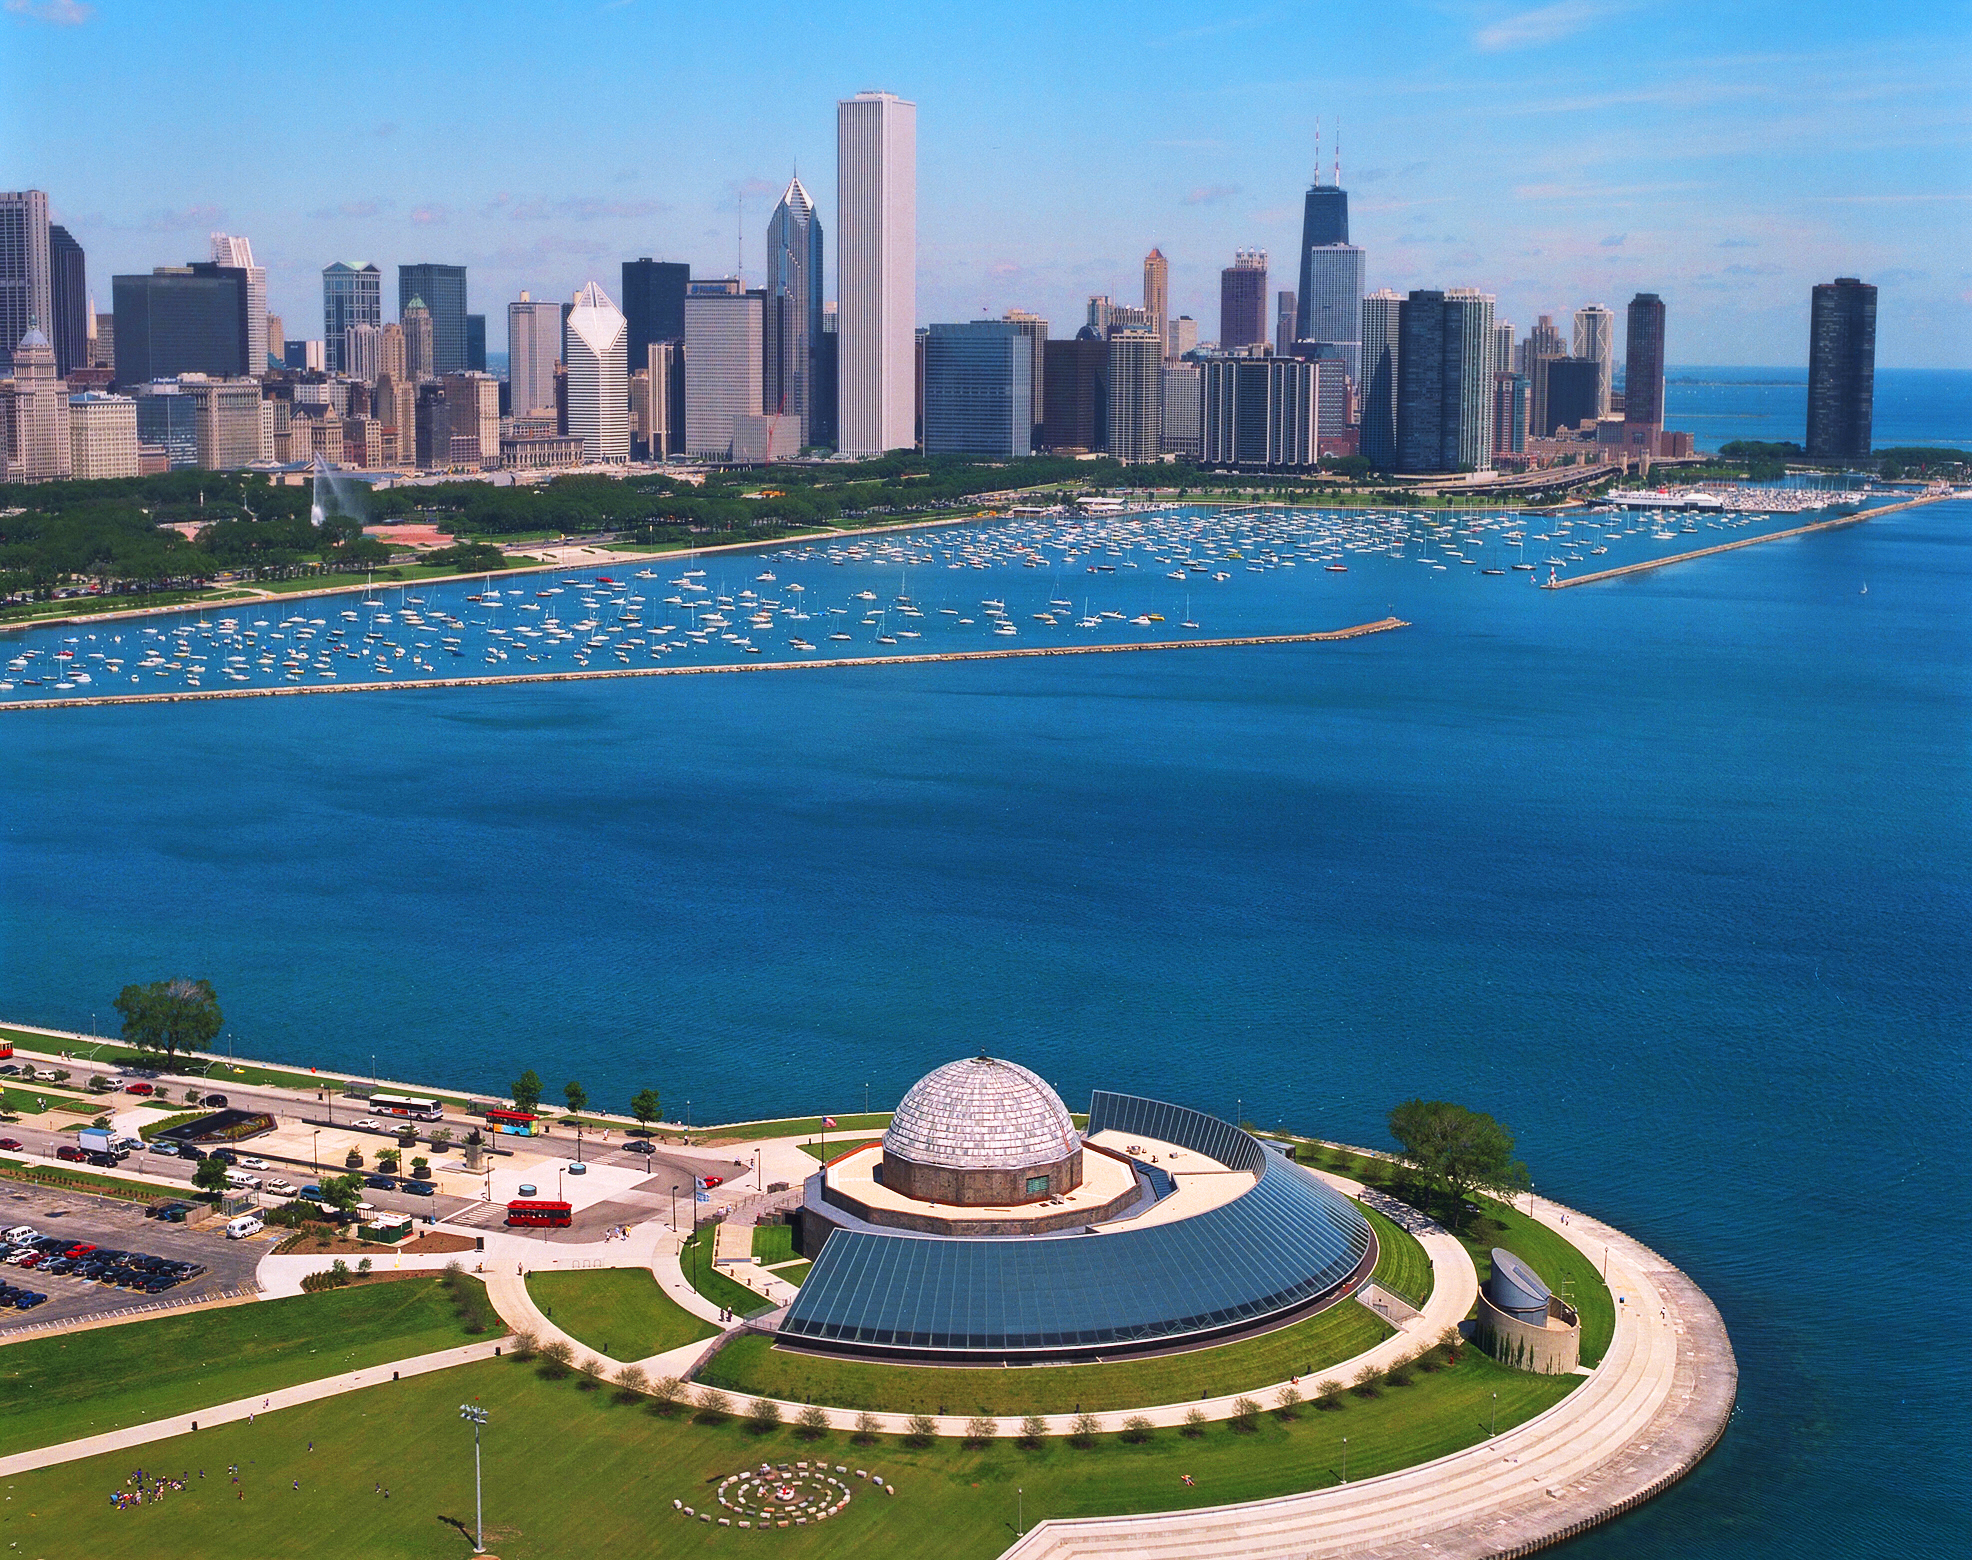 adler planetarium chicago, best places to take photos in chicago, chicago guide, chicago tour guide, where to take photographs in chicago, chicago blogger, travel blogger, best tourist spots in chicago